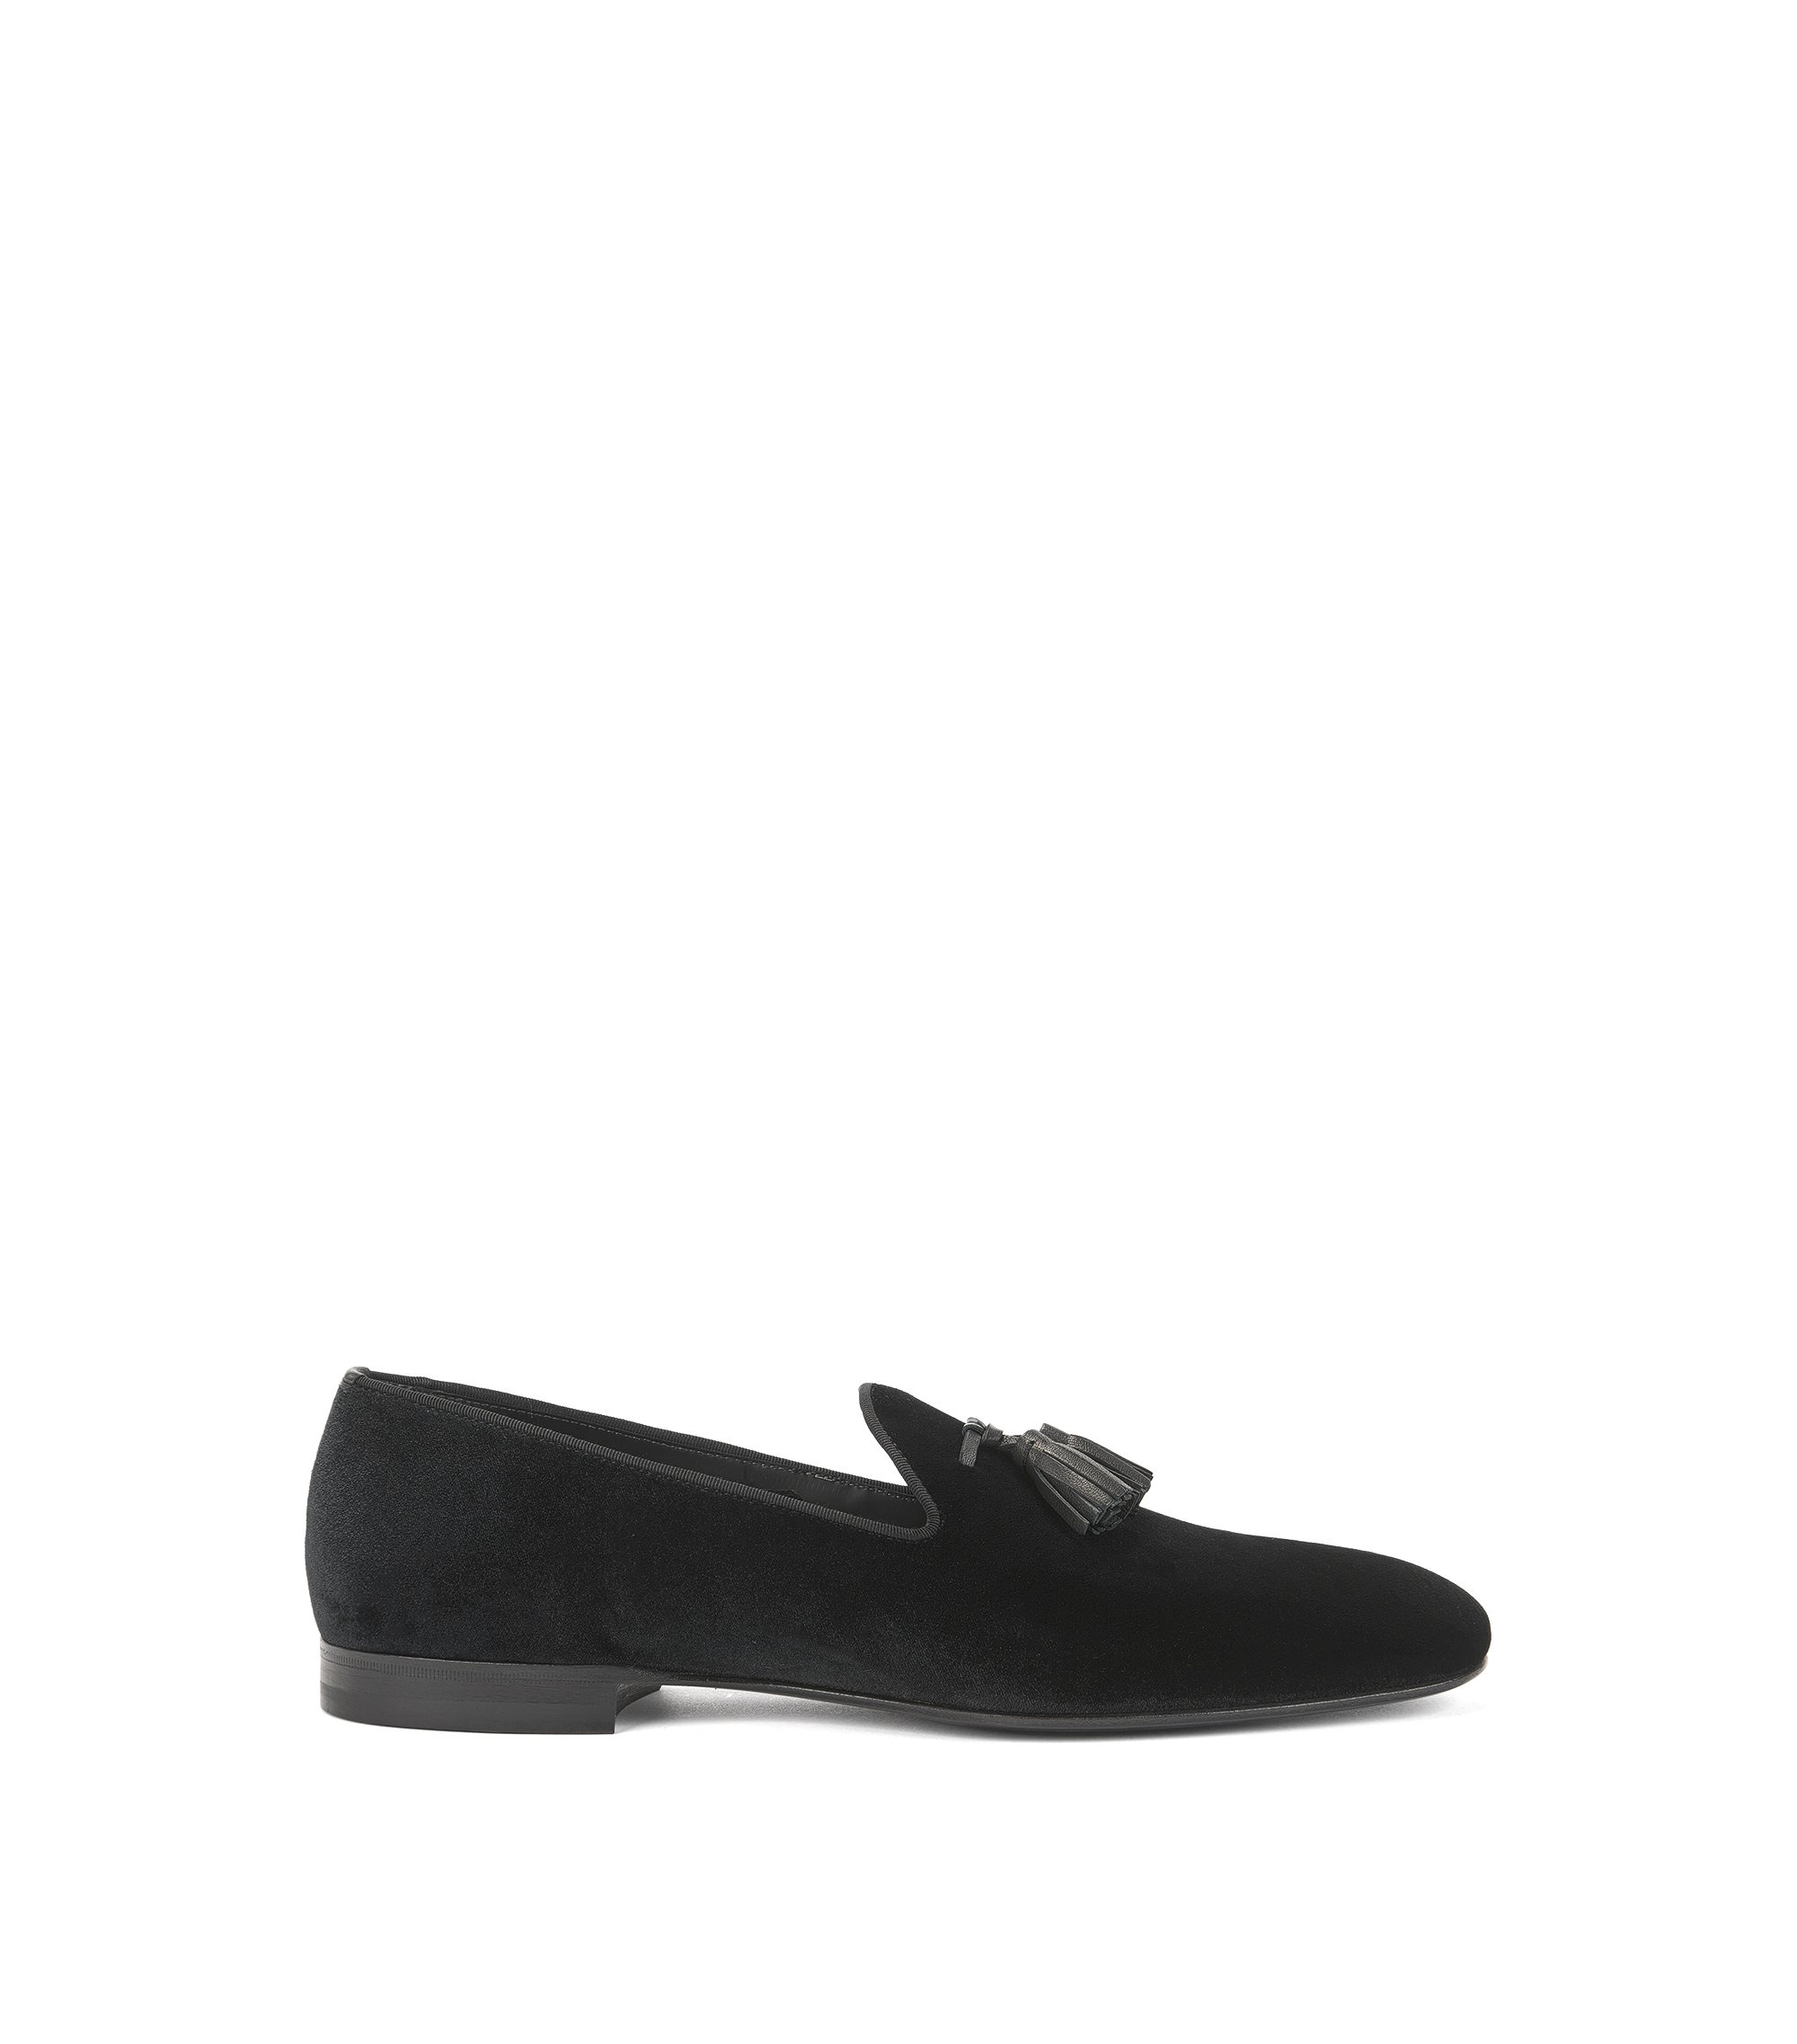 Slip-on loafers in Italian velvet, Black